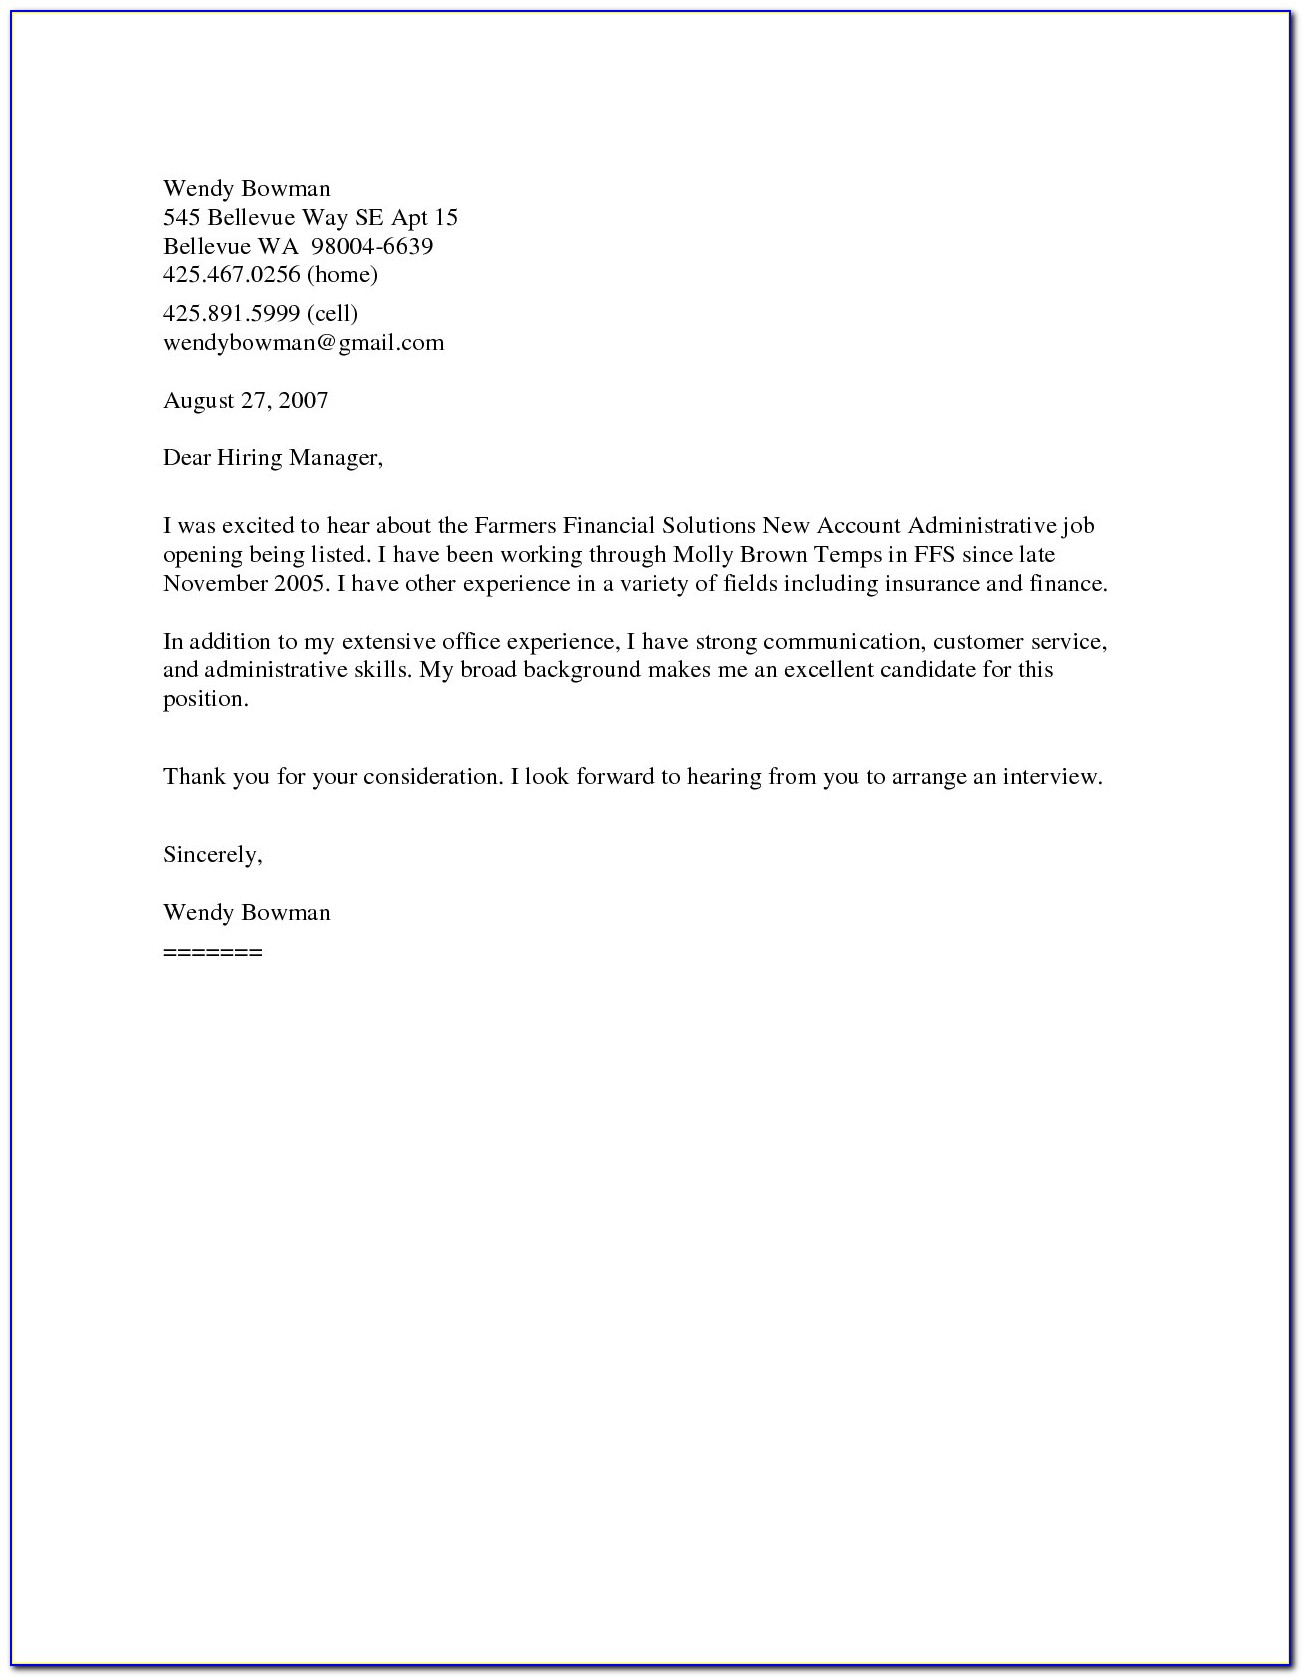 General Resume Cover Letter Resume Templates For General Resume Cover Letter Examples